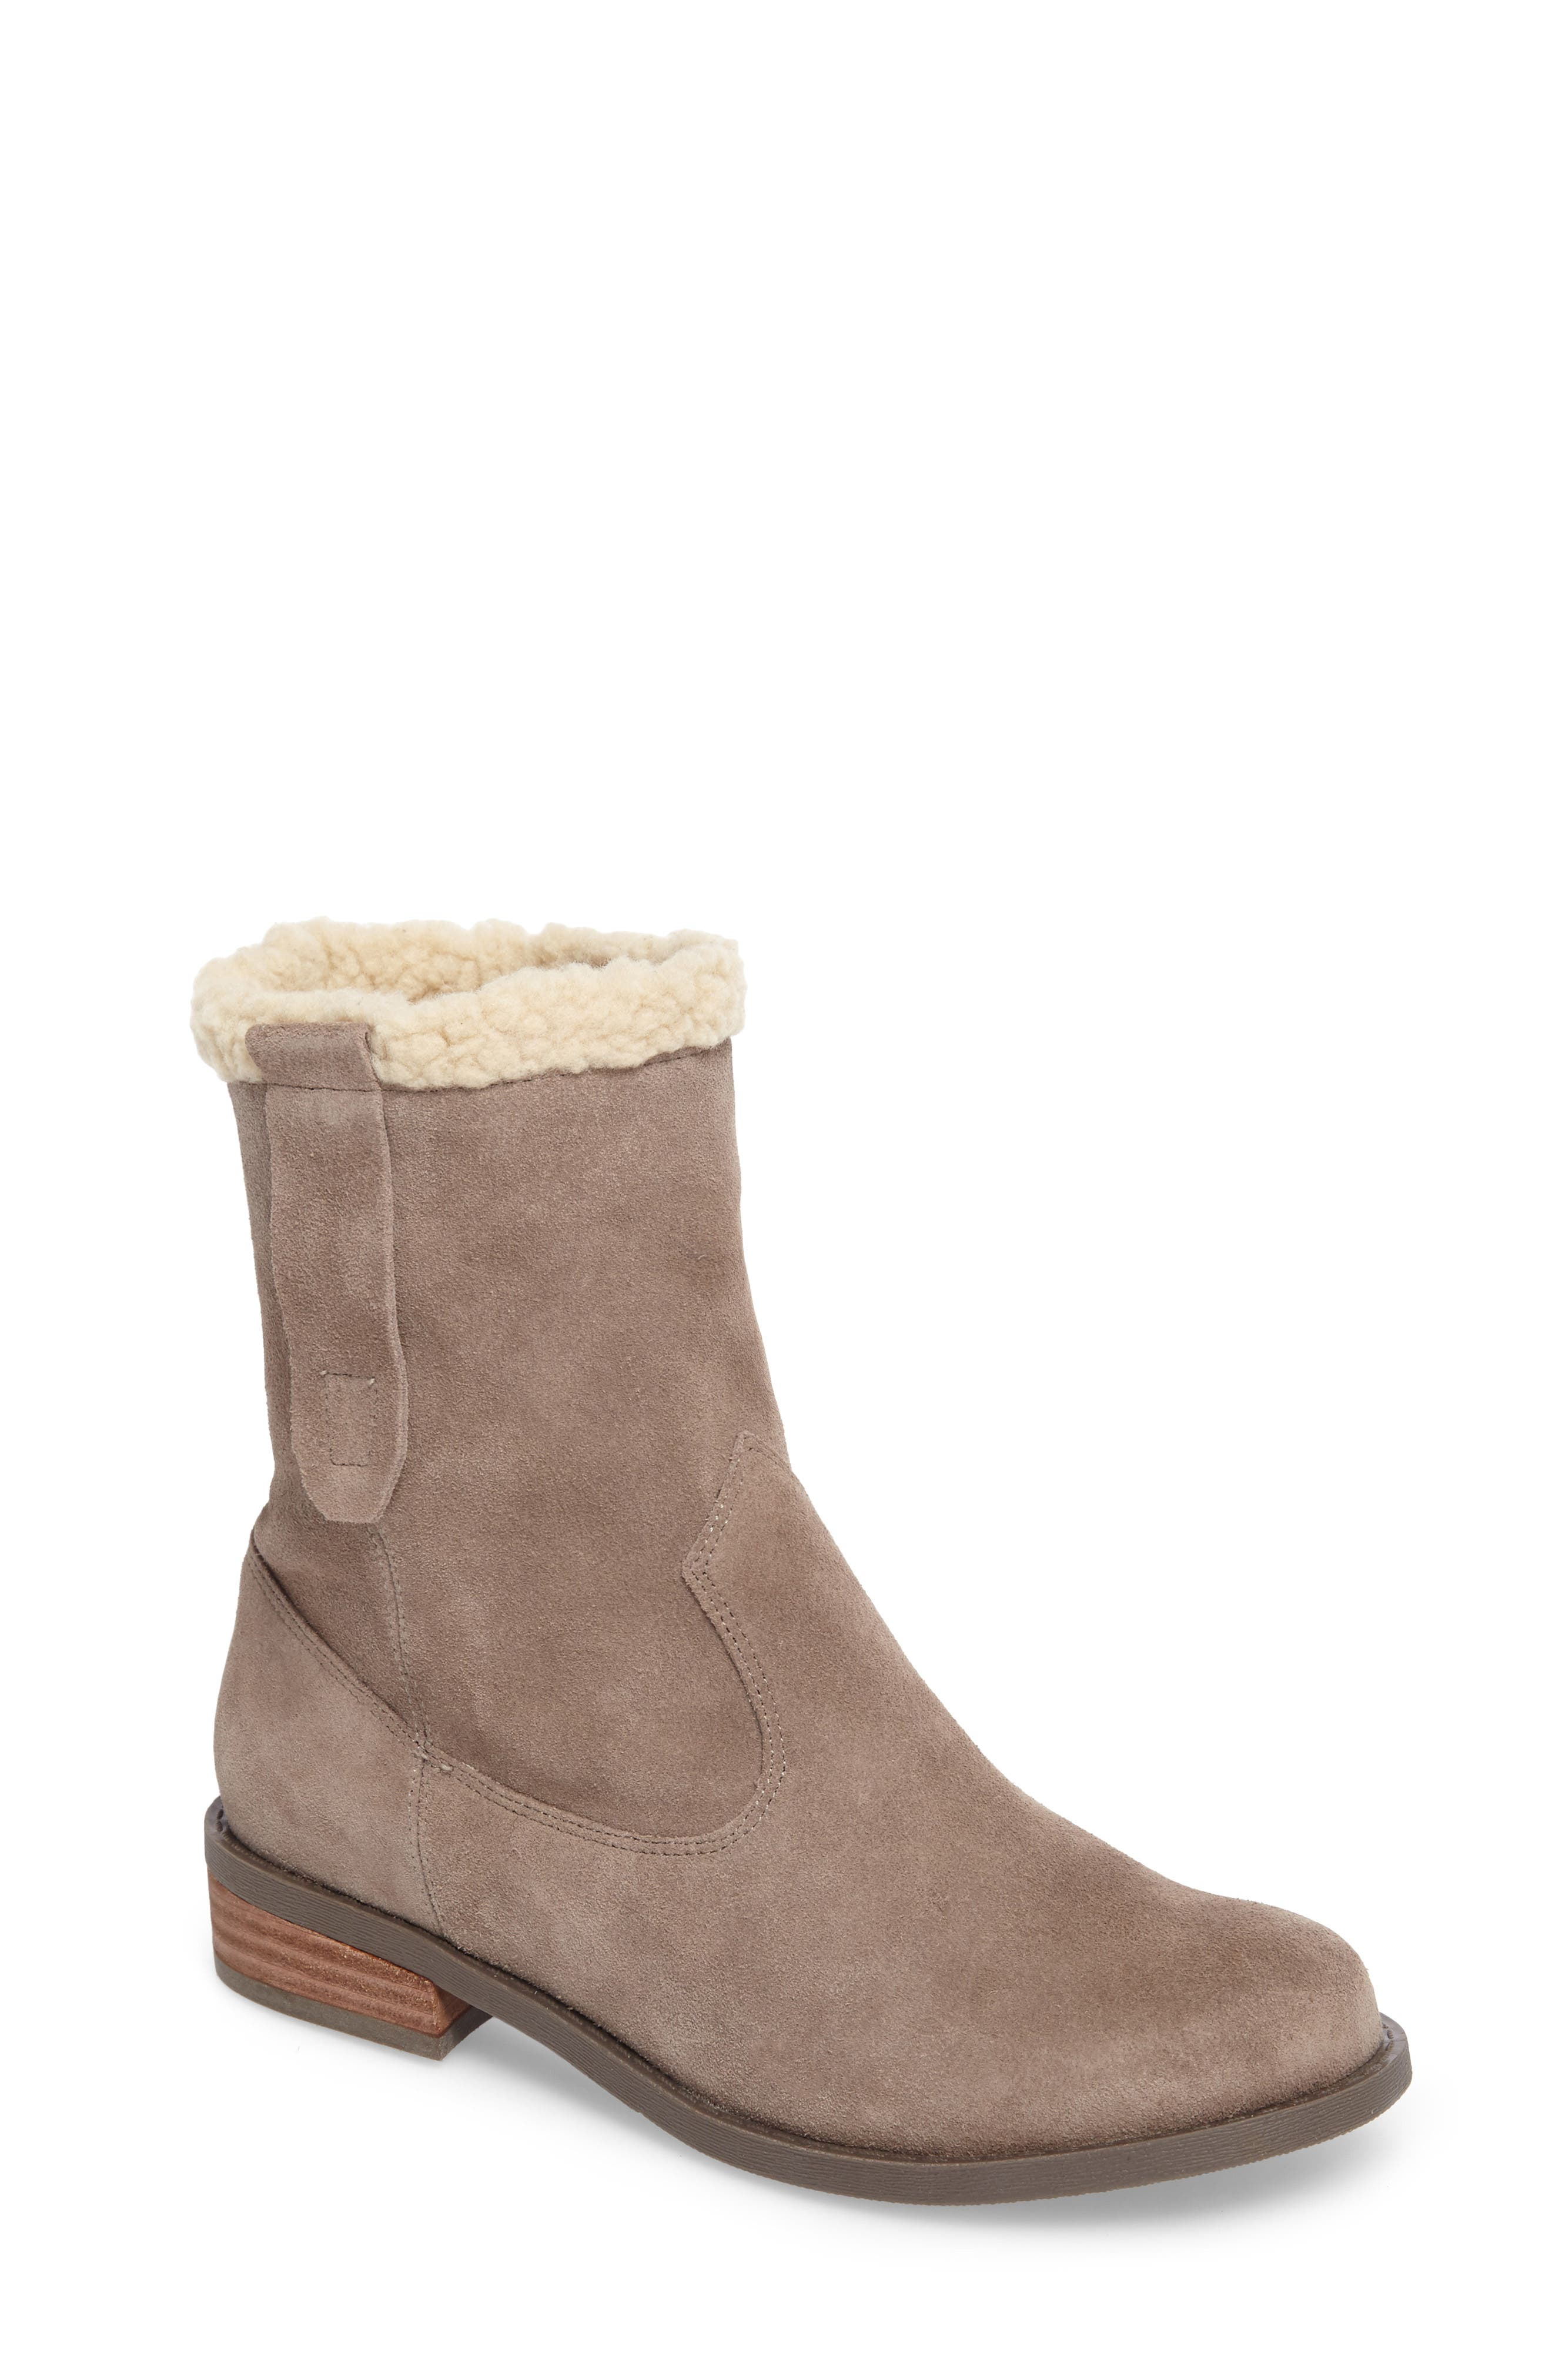 SOLE SOCIETY, Verona Faux Shearling Boot, Main thumbnail 1, color, DARK MUSHROOM SUEDE